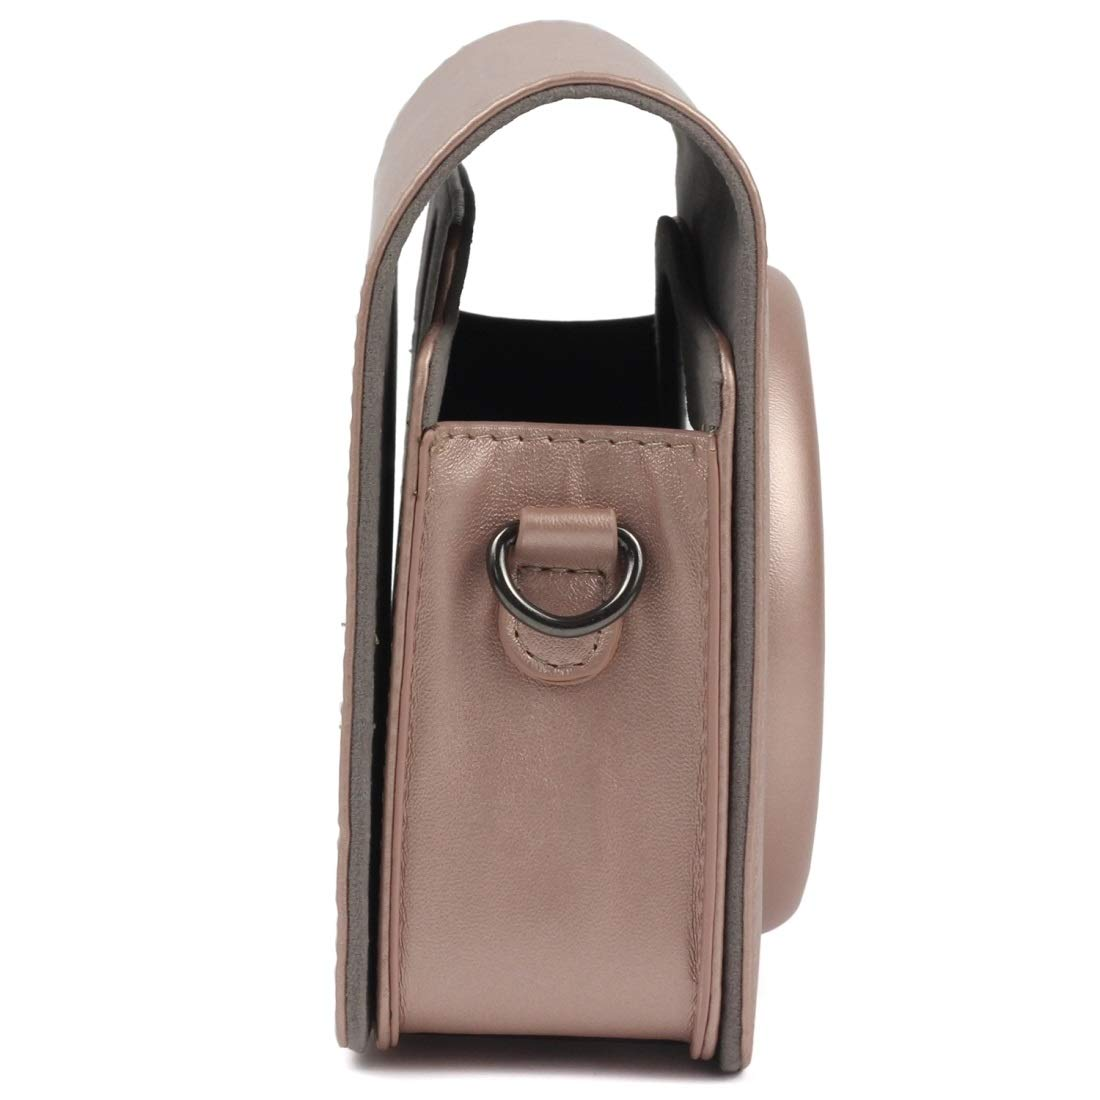 with Adjustable Shoulder Strap Durable Color : Light Brown Pearly Lustre PU Leather Case Bag for FUJIFILM Instax Square SQ6 Camera